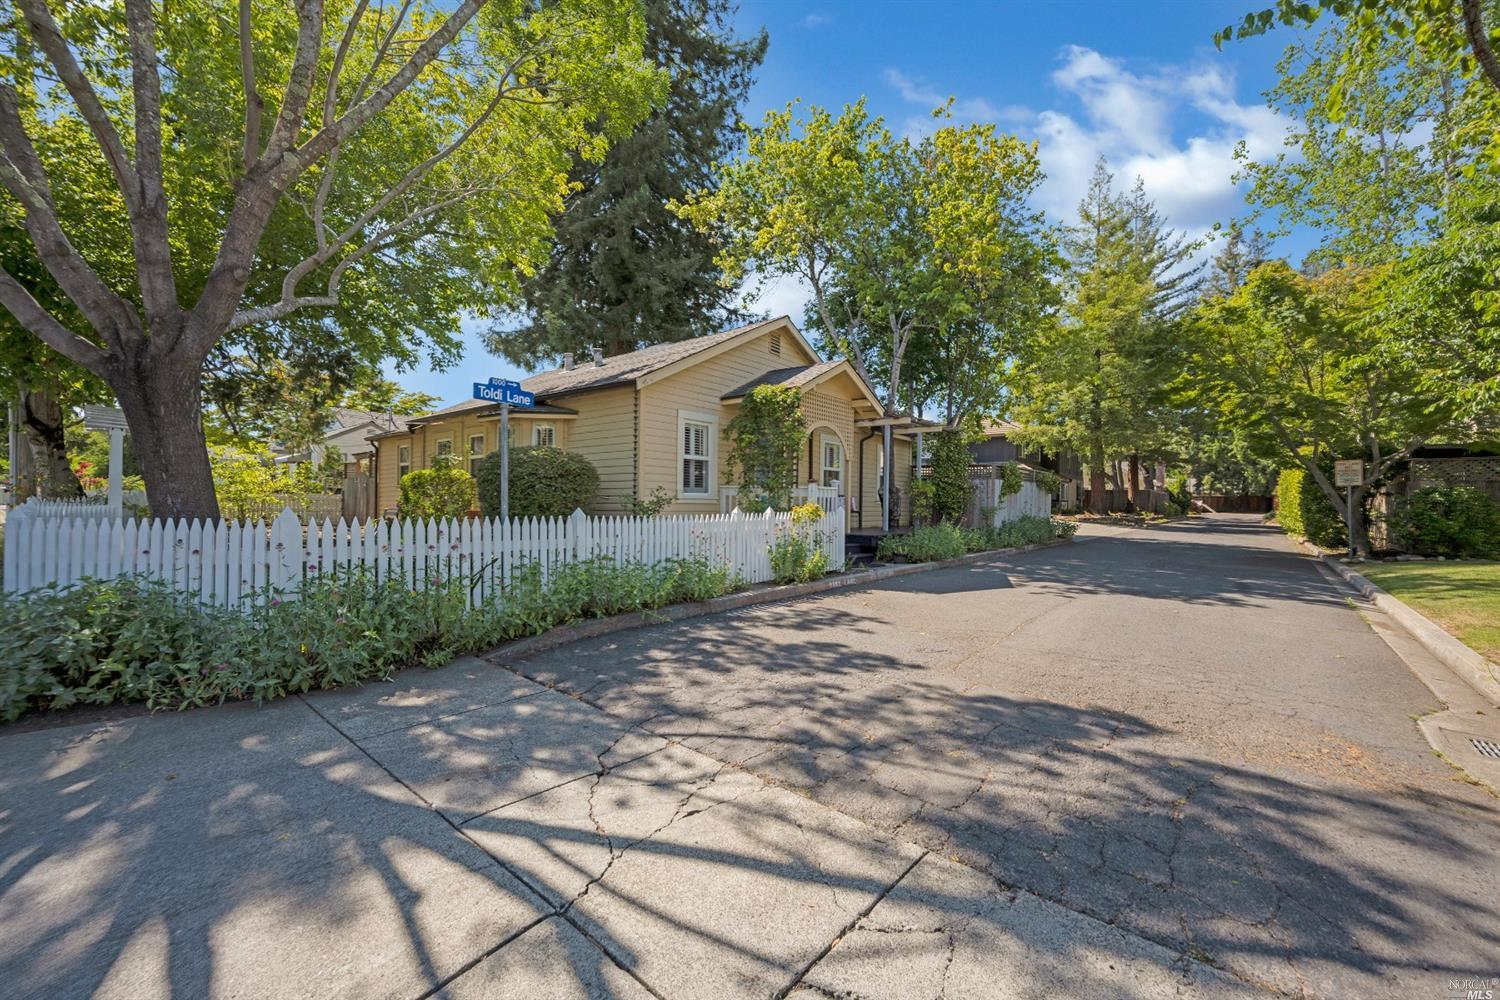 New Listing! Open this weekend! Charming, cheery and bright 1940's cottage with white picket fence,